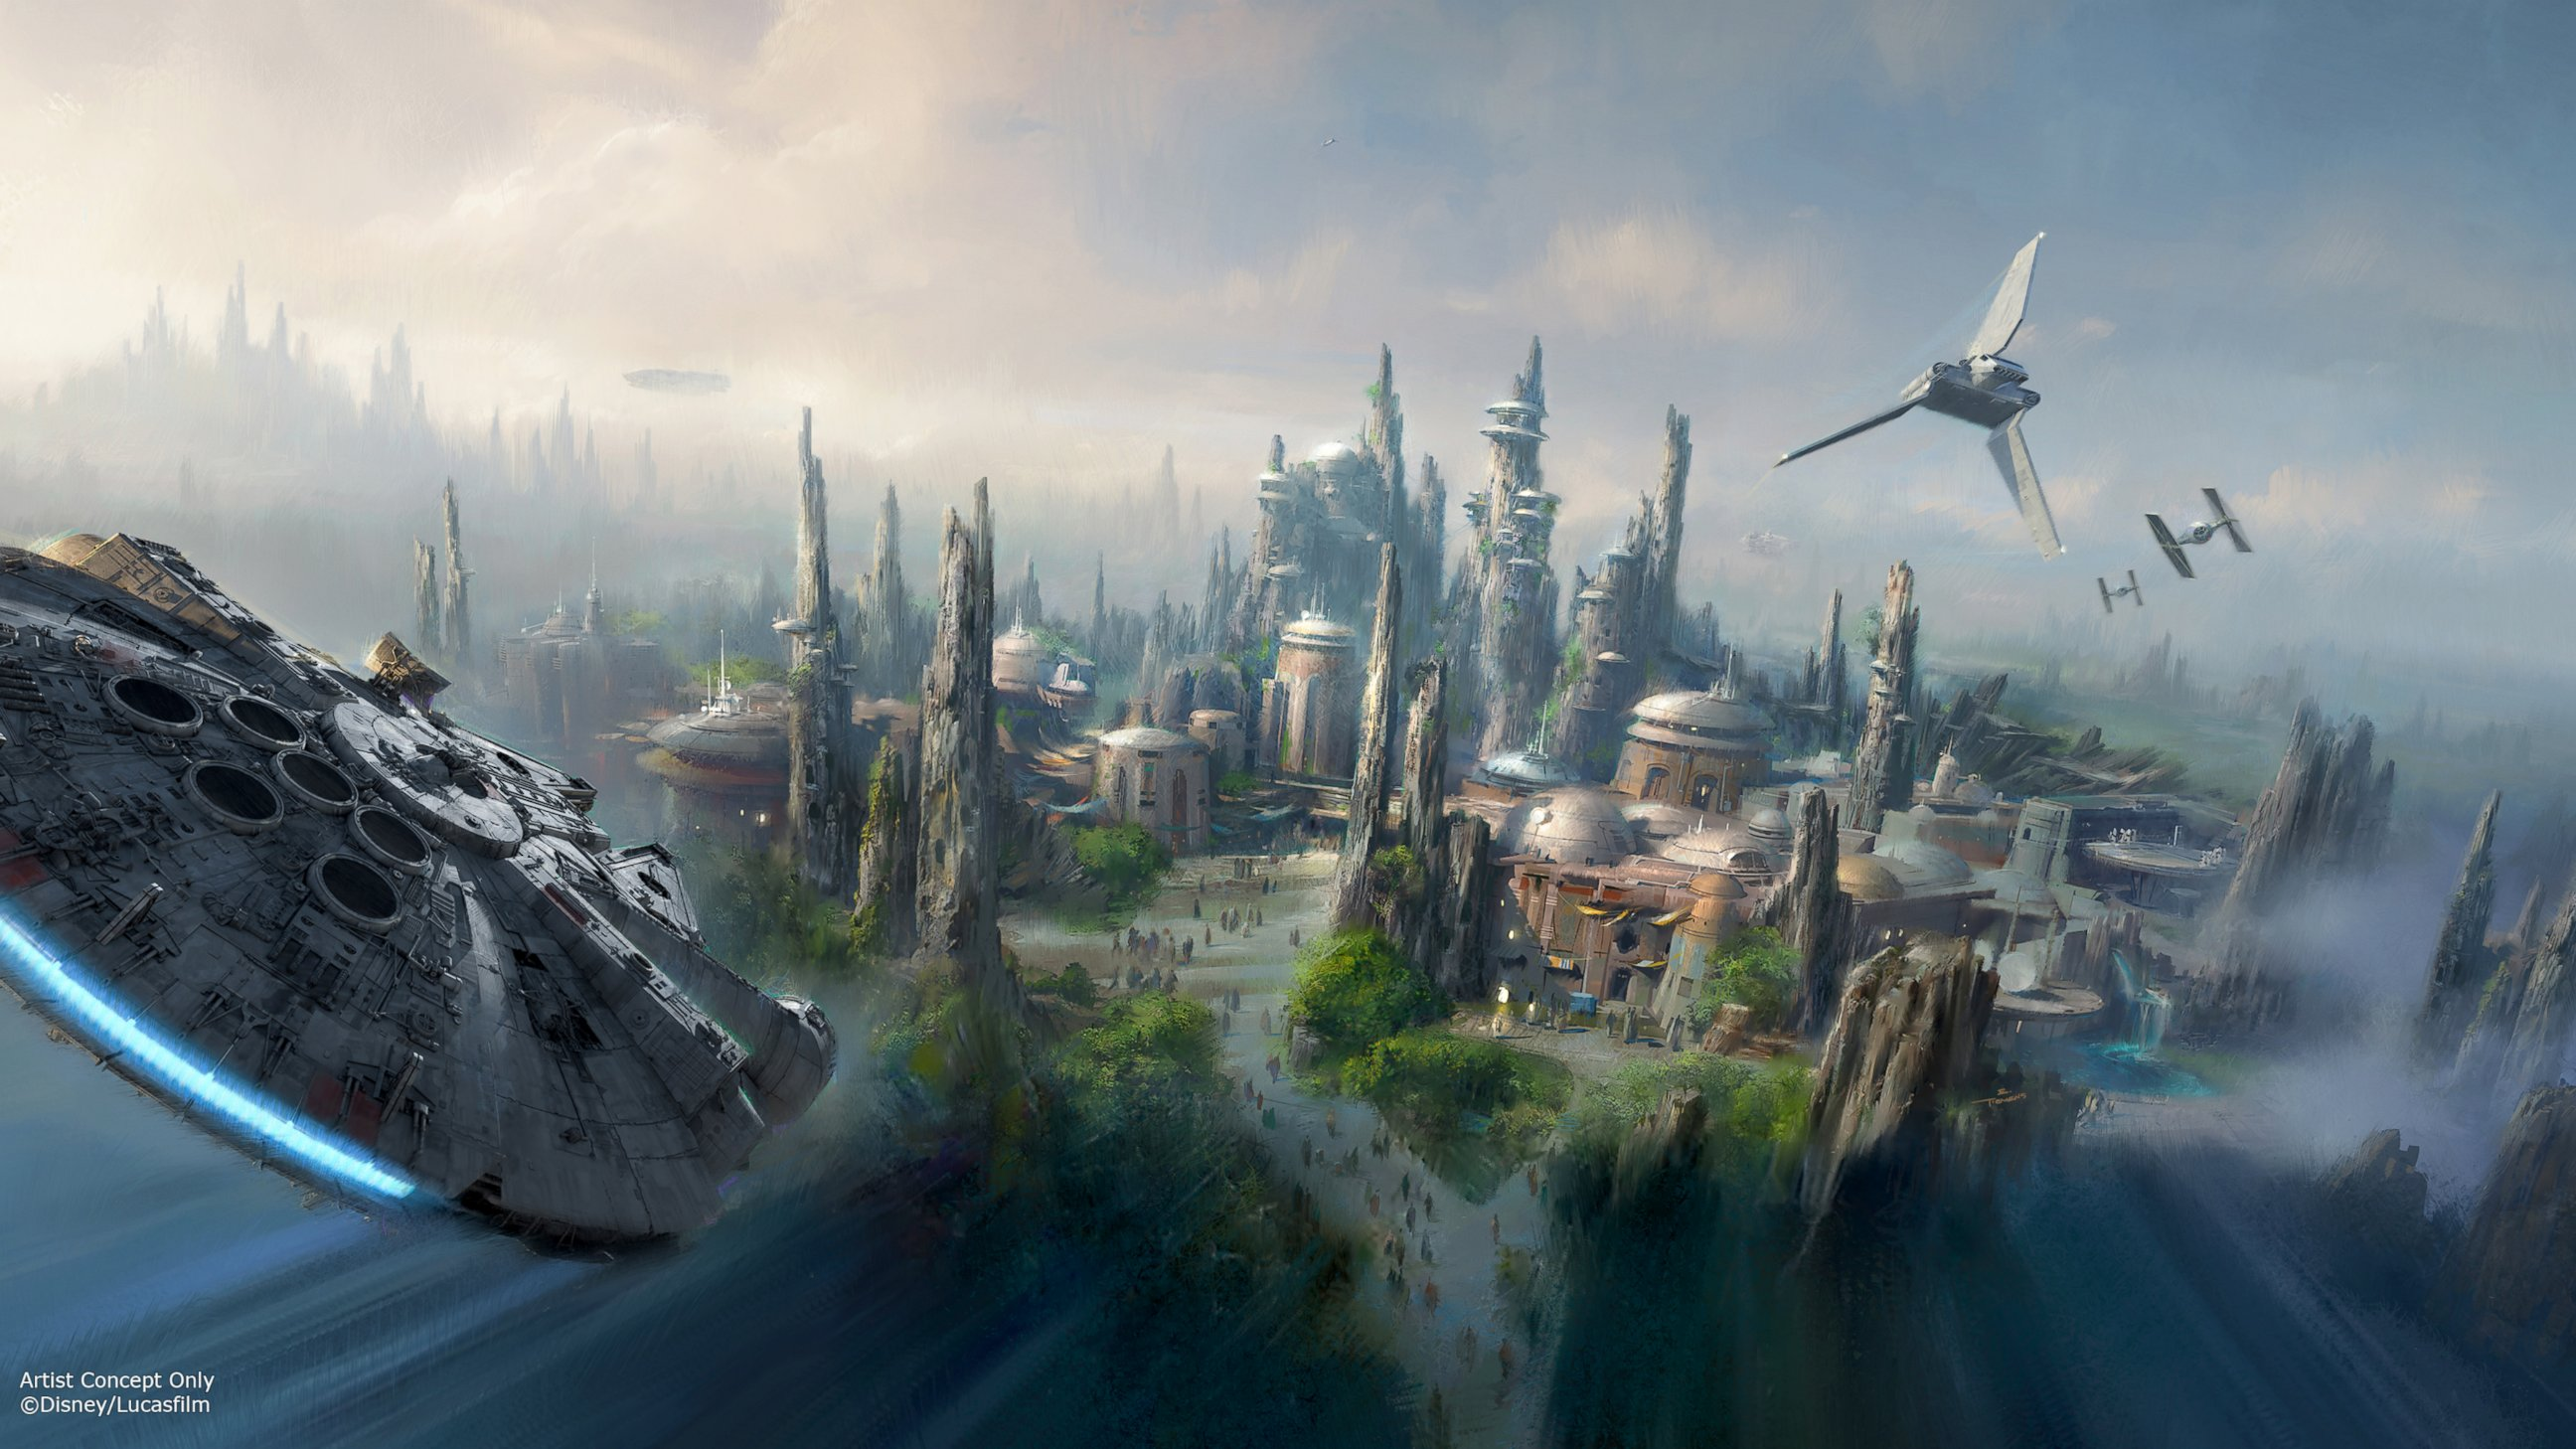 7 things to know about Disney's new Star Wars theme park